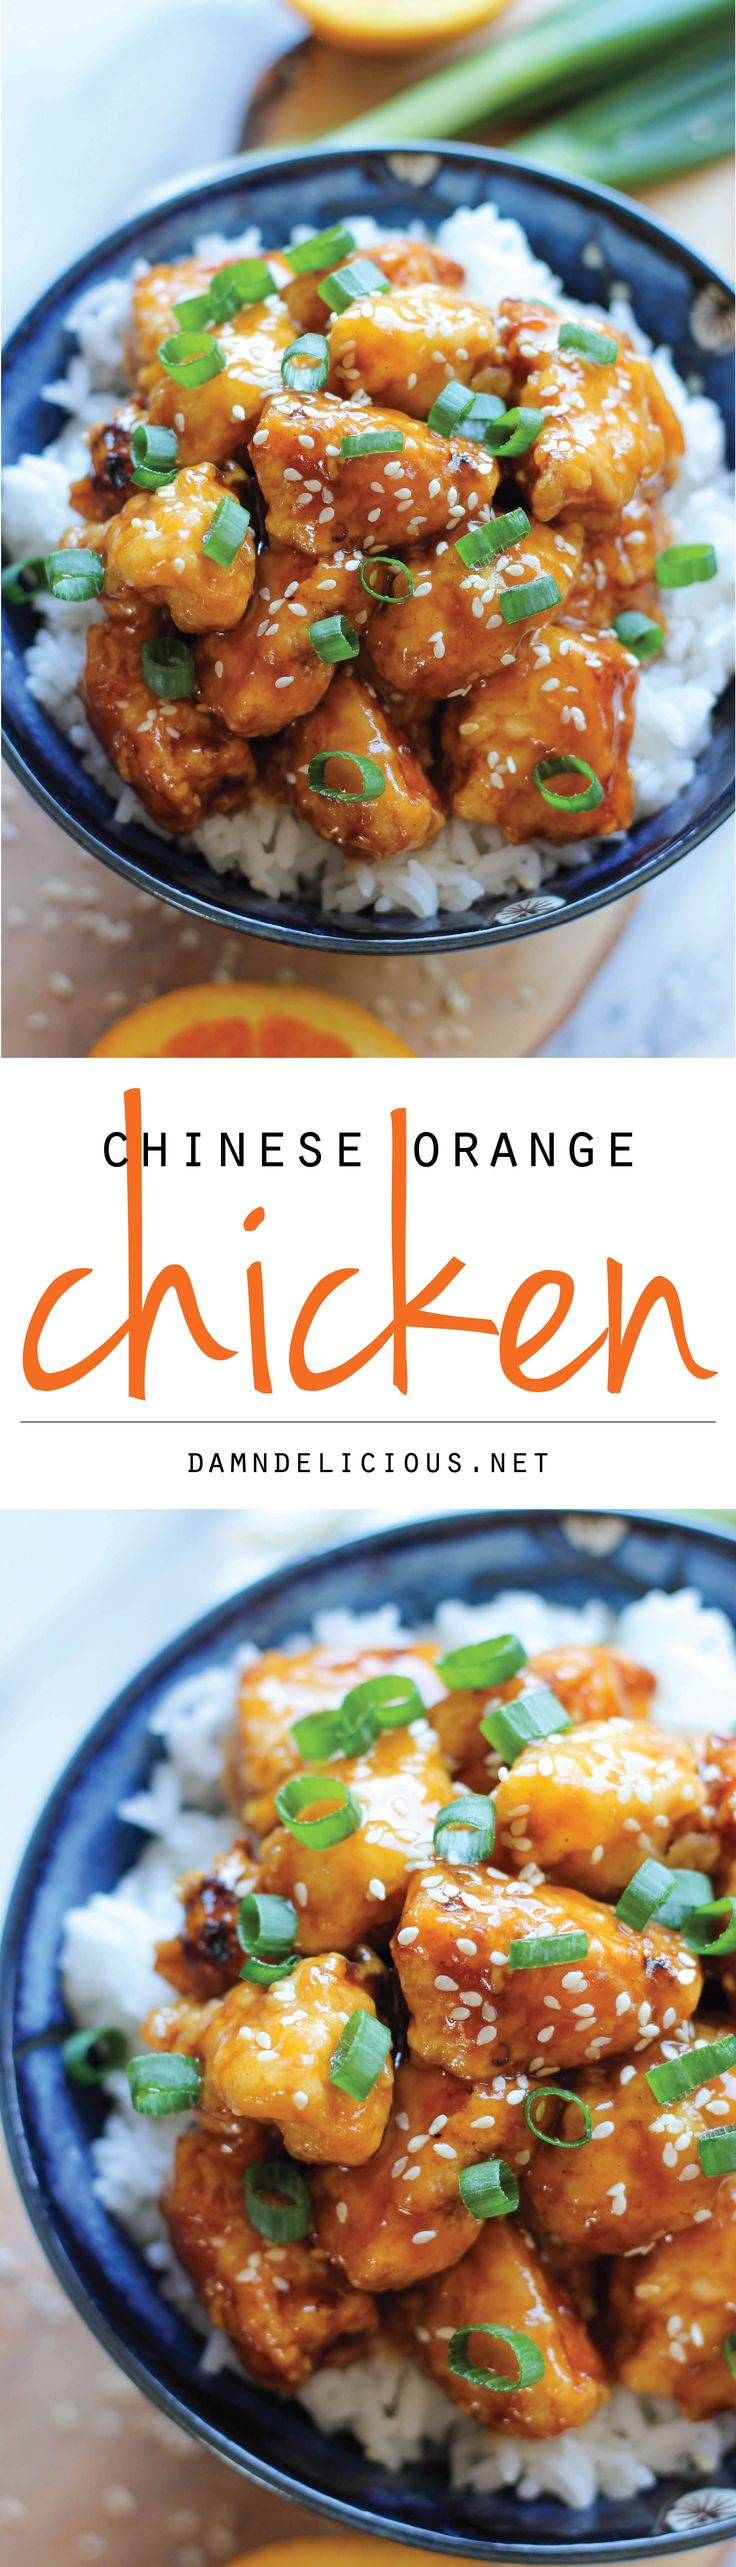 {China} Chinese Orange Chicken - Not even Panda Express can beat this homemade orange chicken!